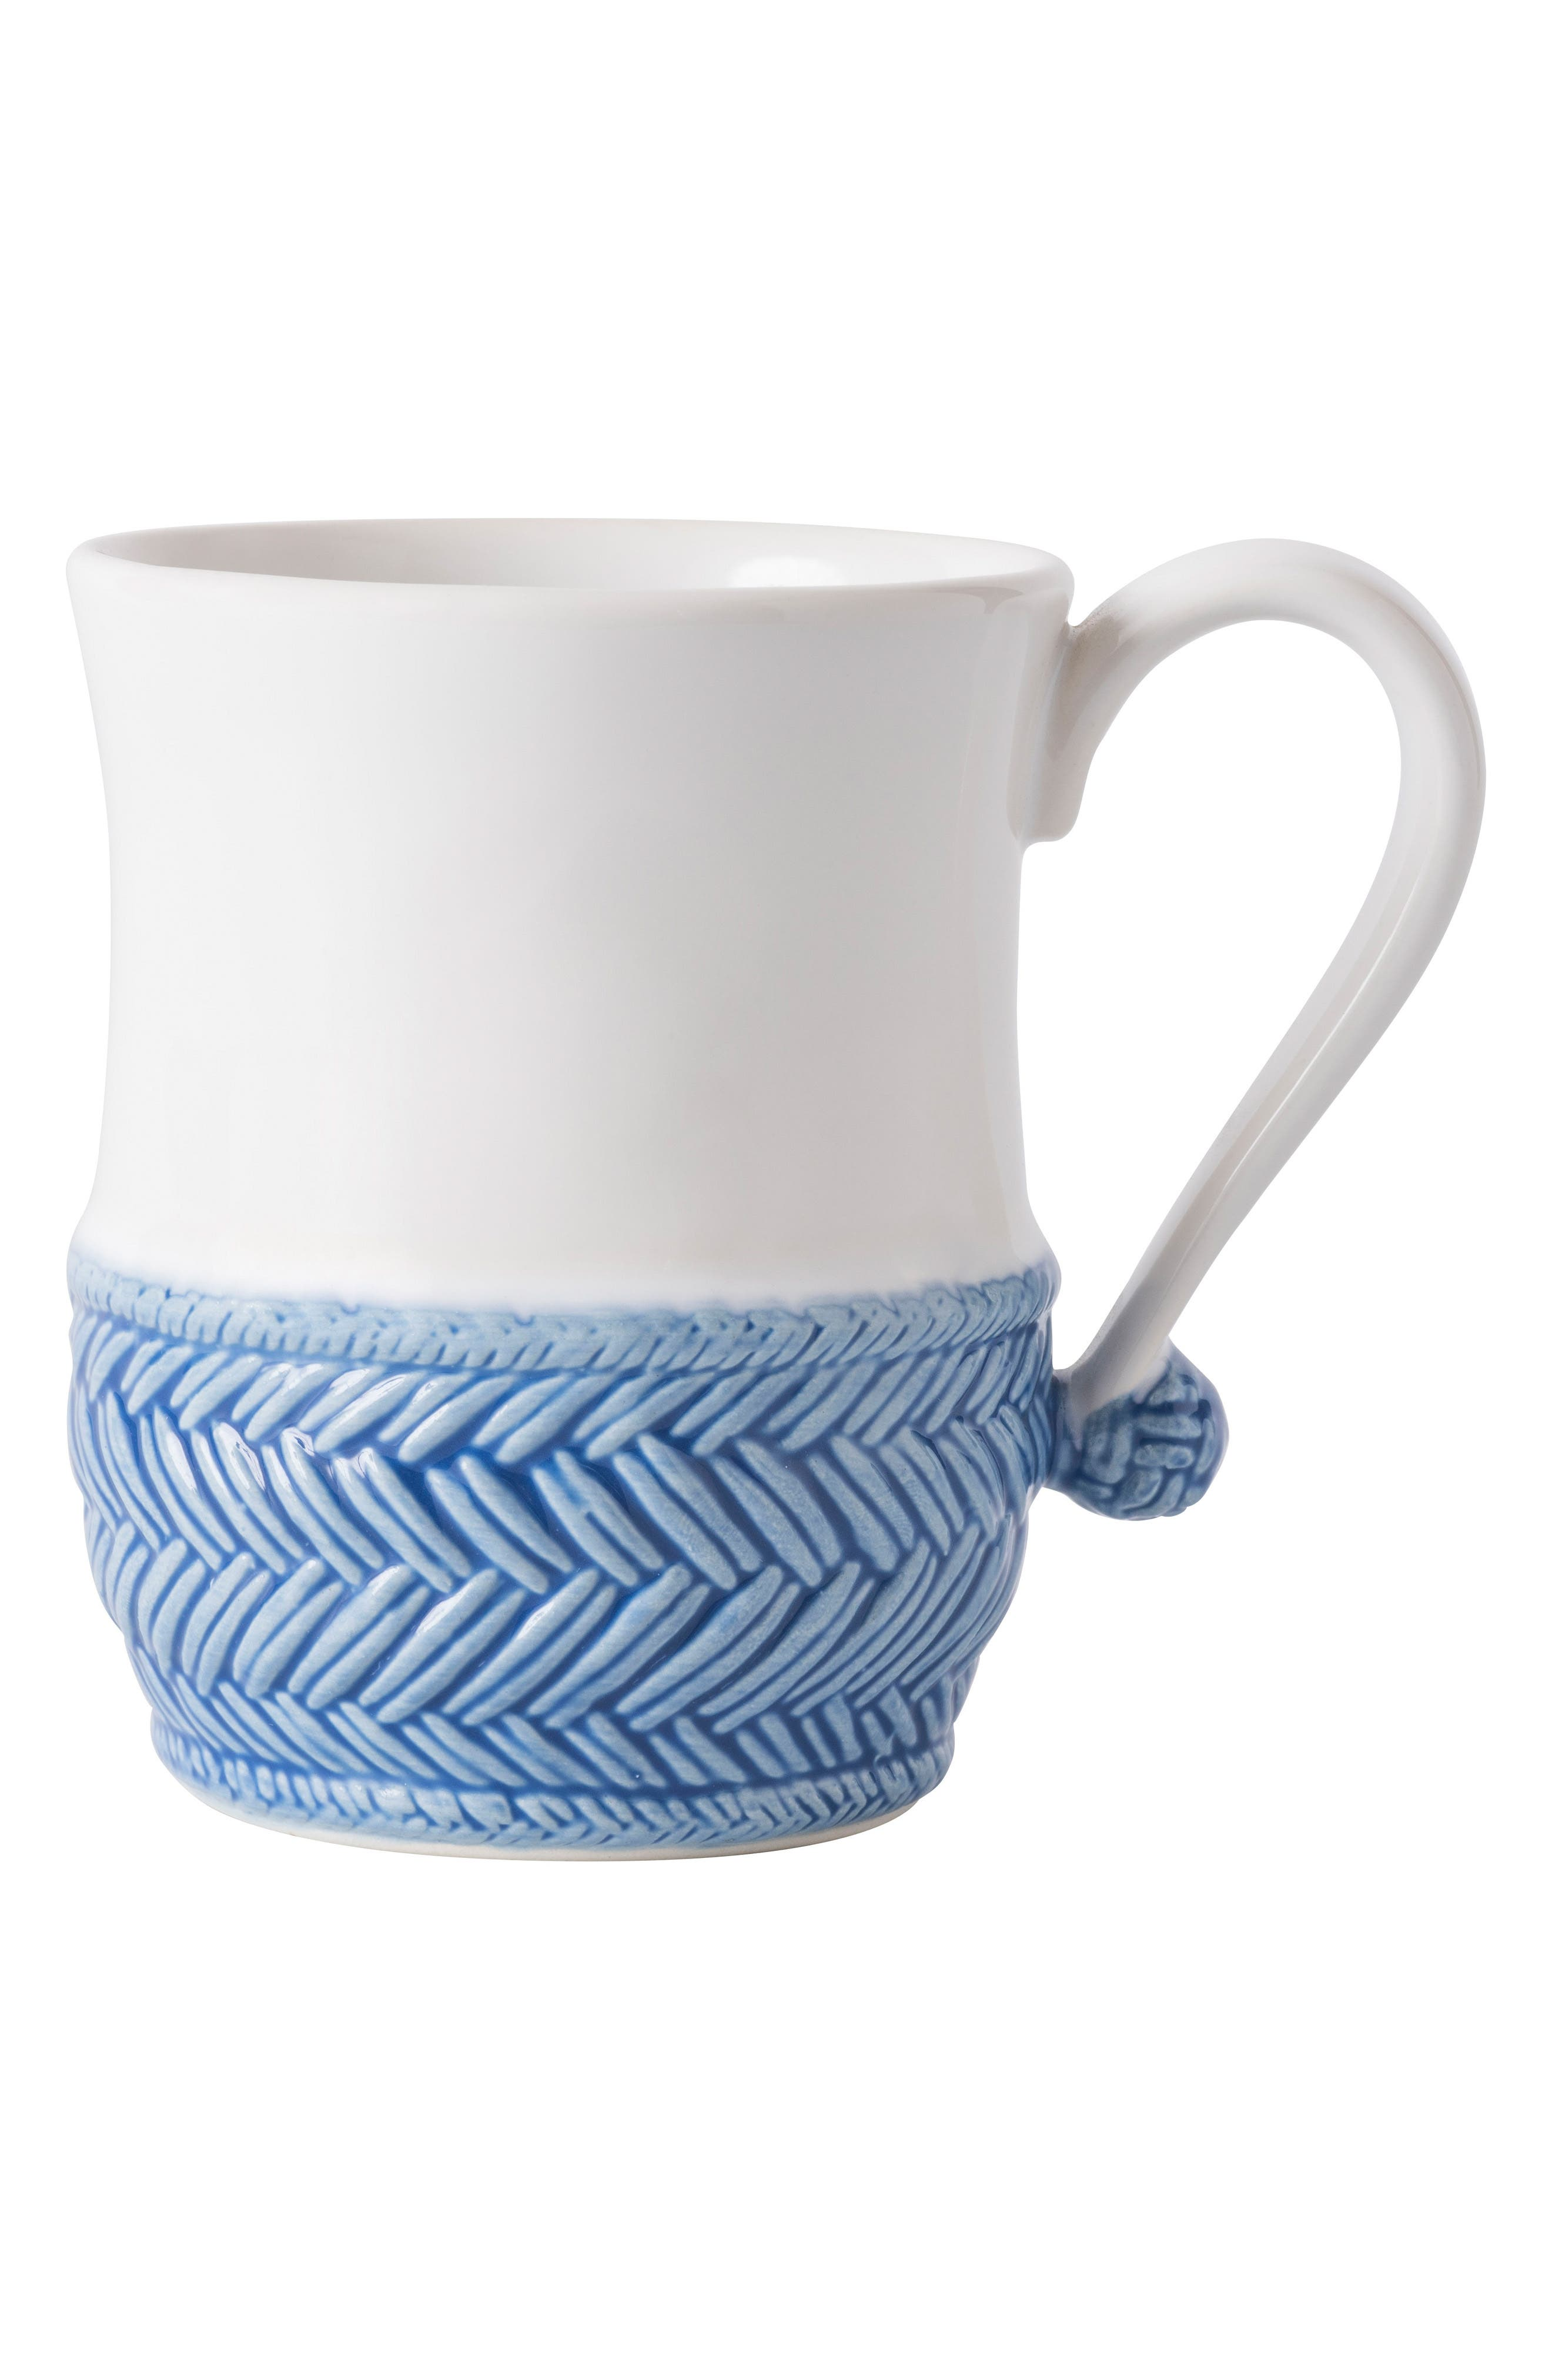 Le Panier Mug,                             Main thumbnail 1, color,                             Whitewash/ Delft Blue